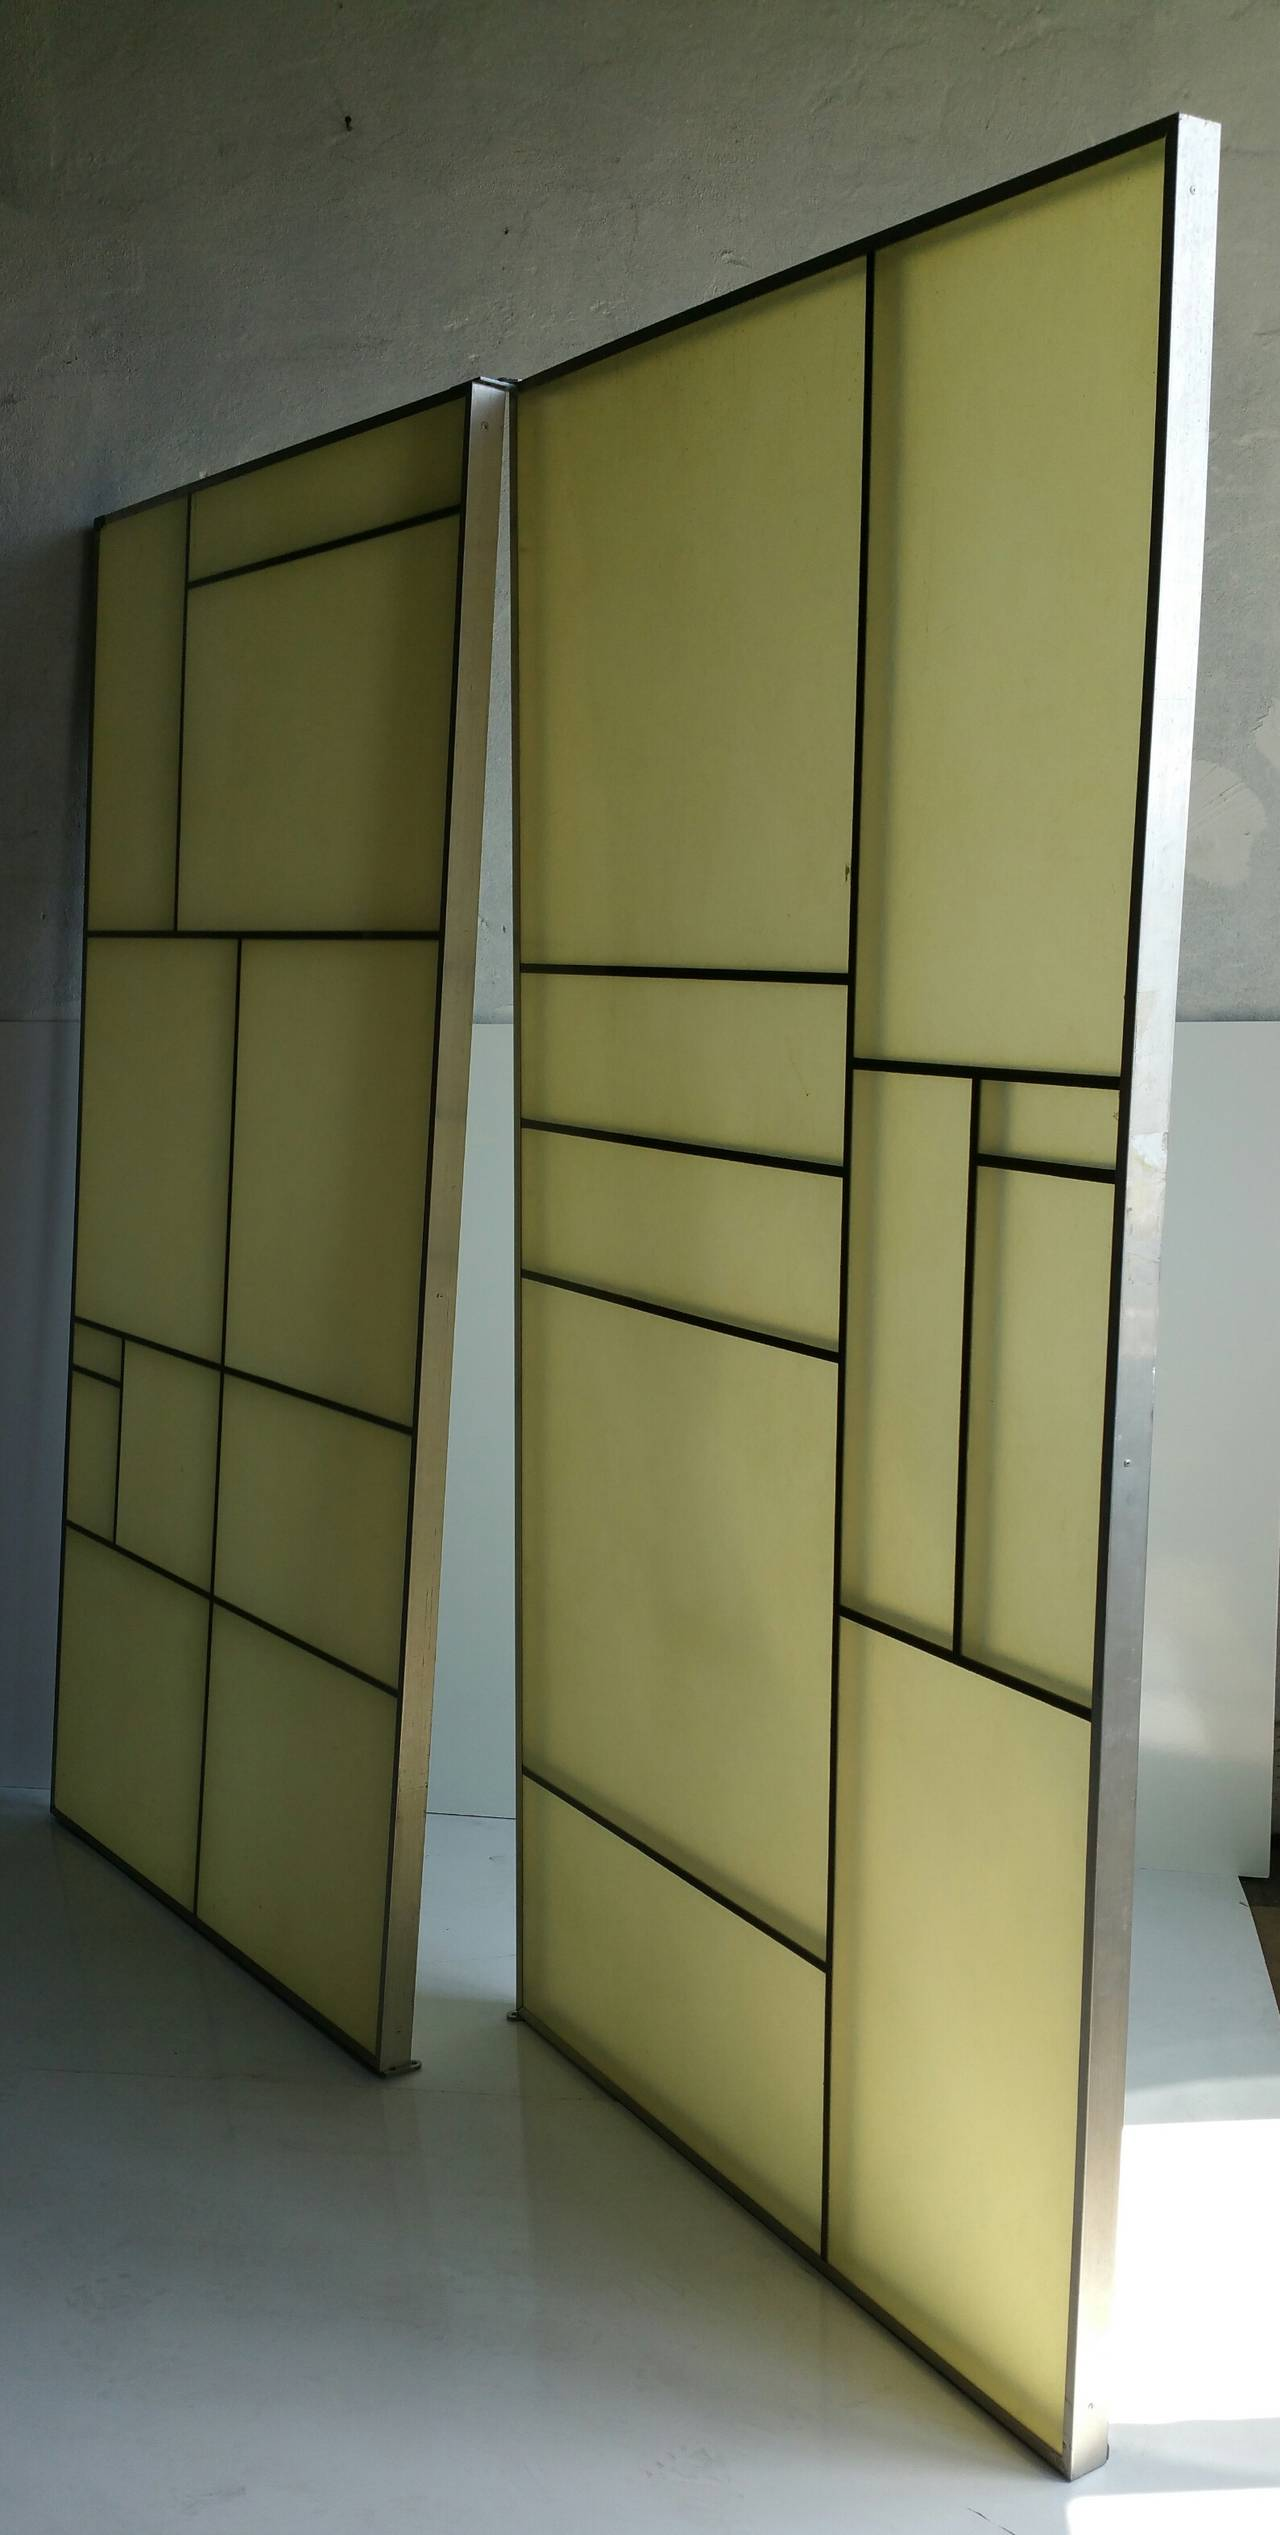 Architectural Aluminum and Fiberglass Panels or Screen, Mondrian Design In Good Condition For Sale In Buffalo, NY